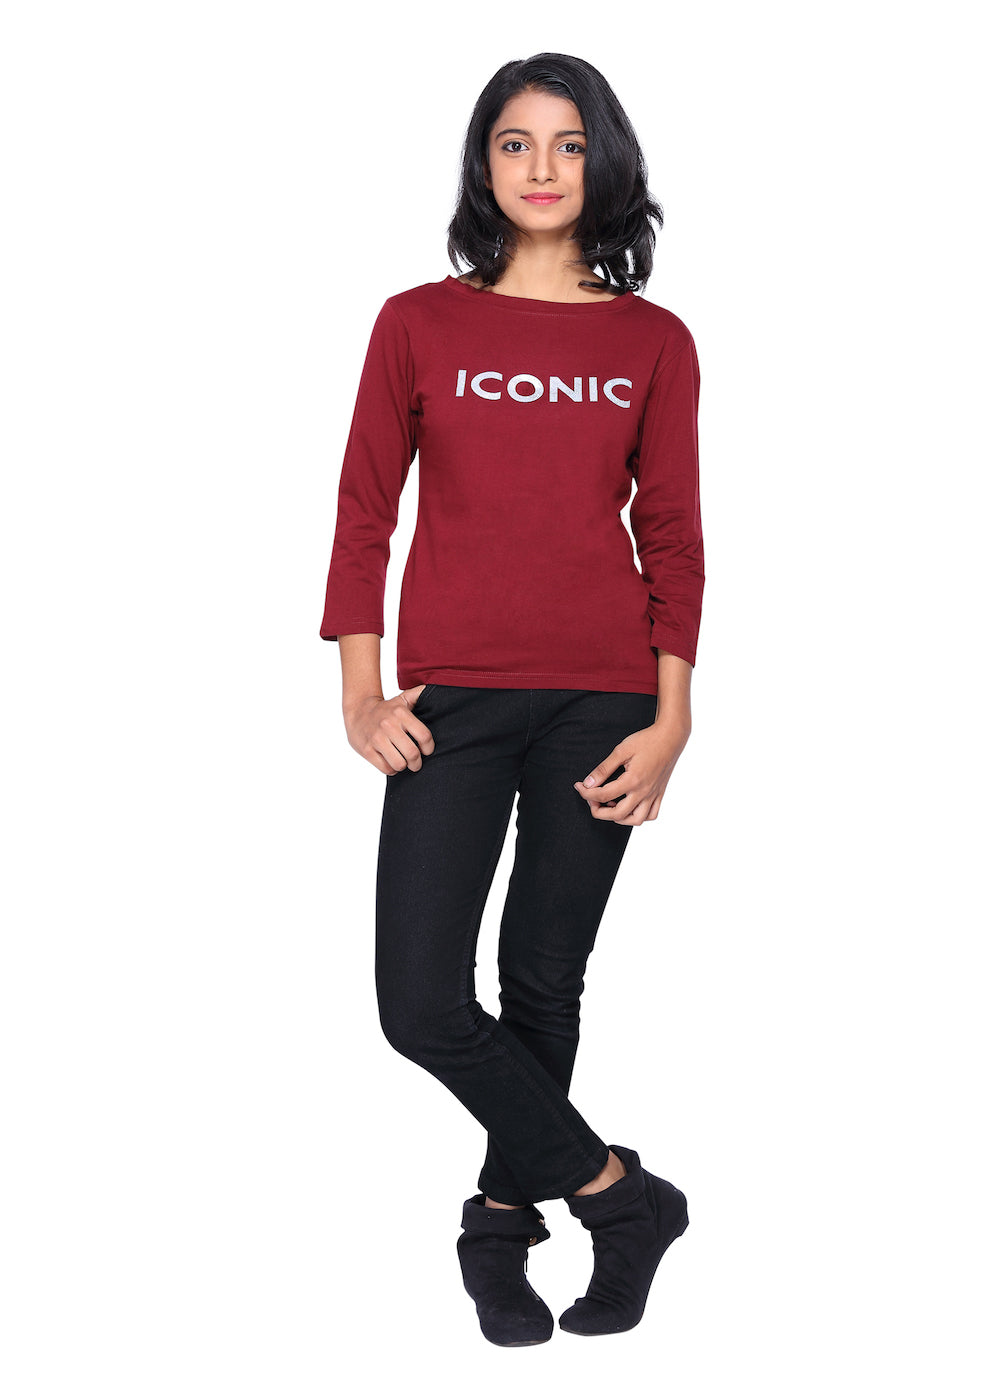 Maroon  Long Tee with silver Iconic Print - GENZEE